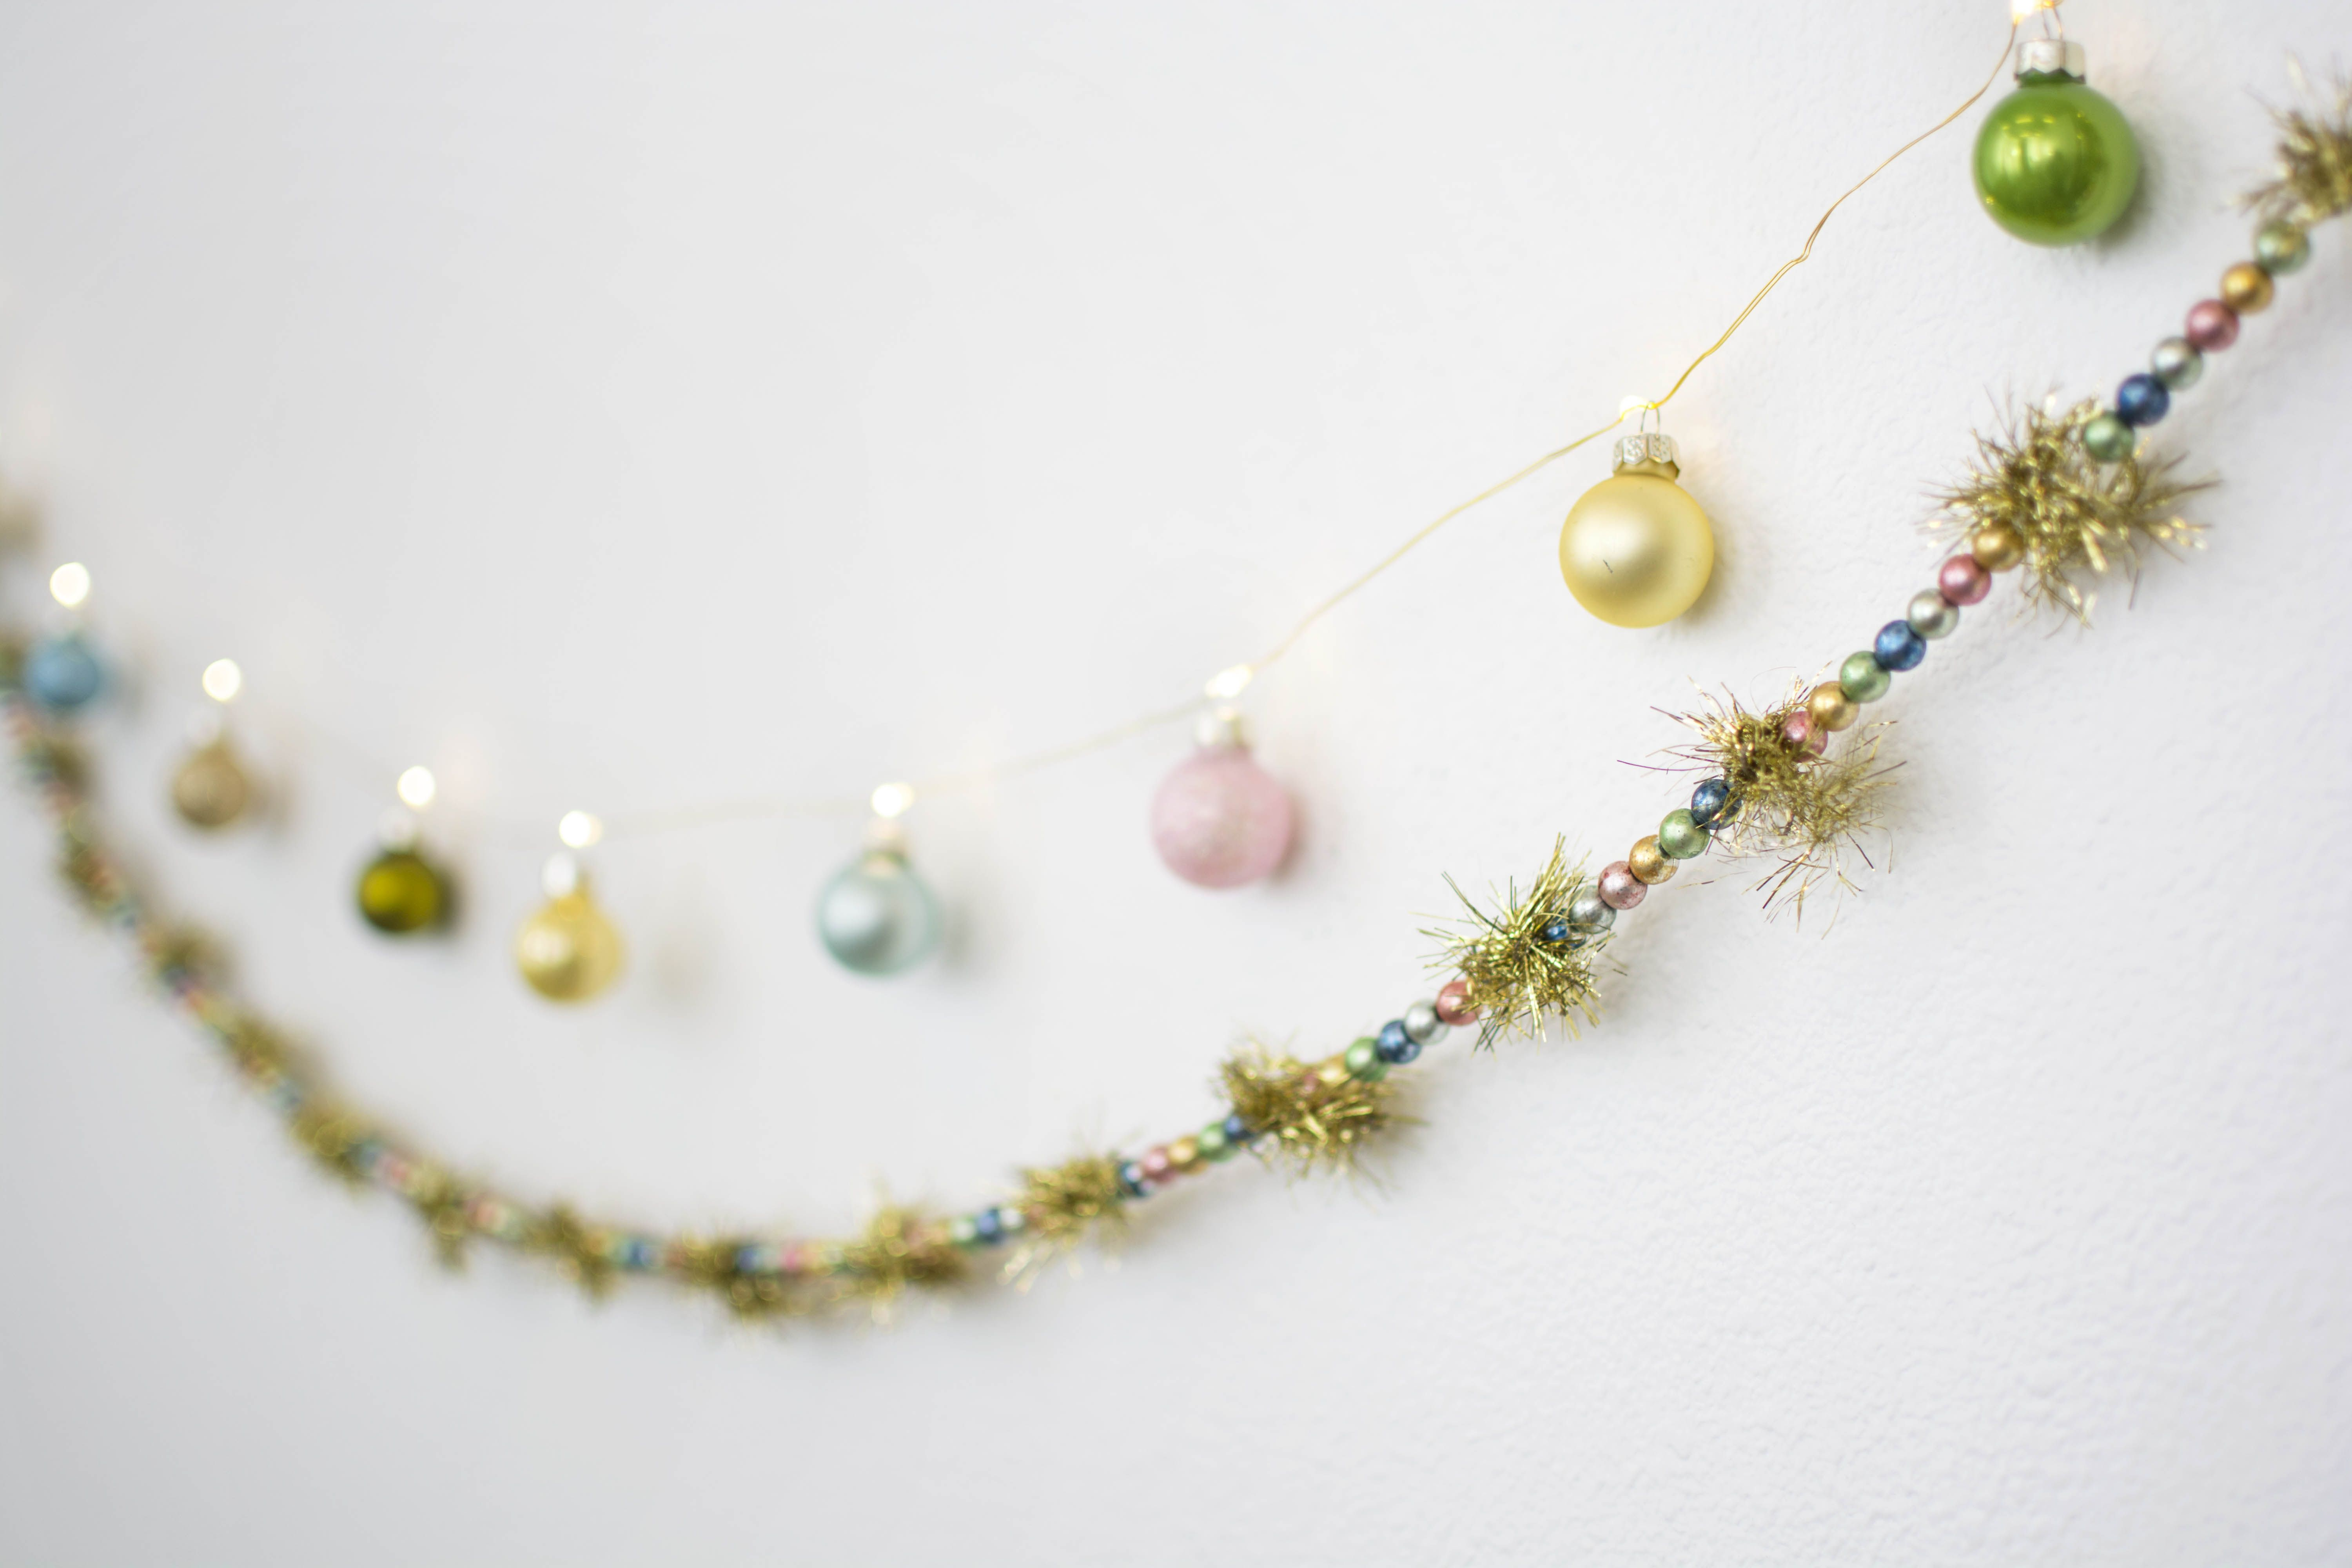 Our Tinsel Beaded Garland Sets Colorful Vintage Style With Its